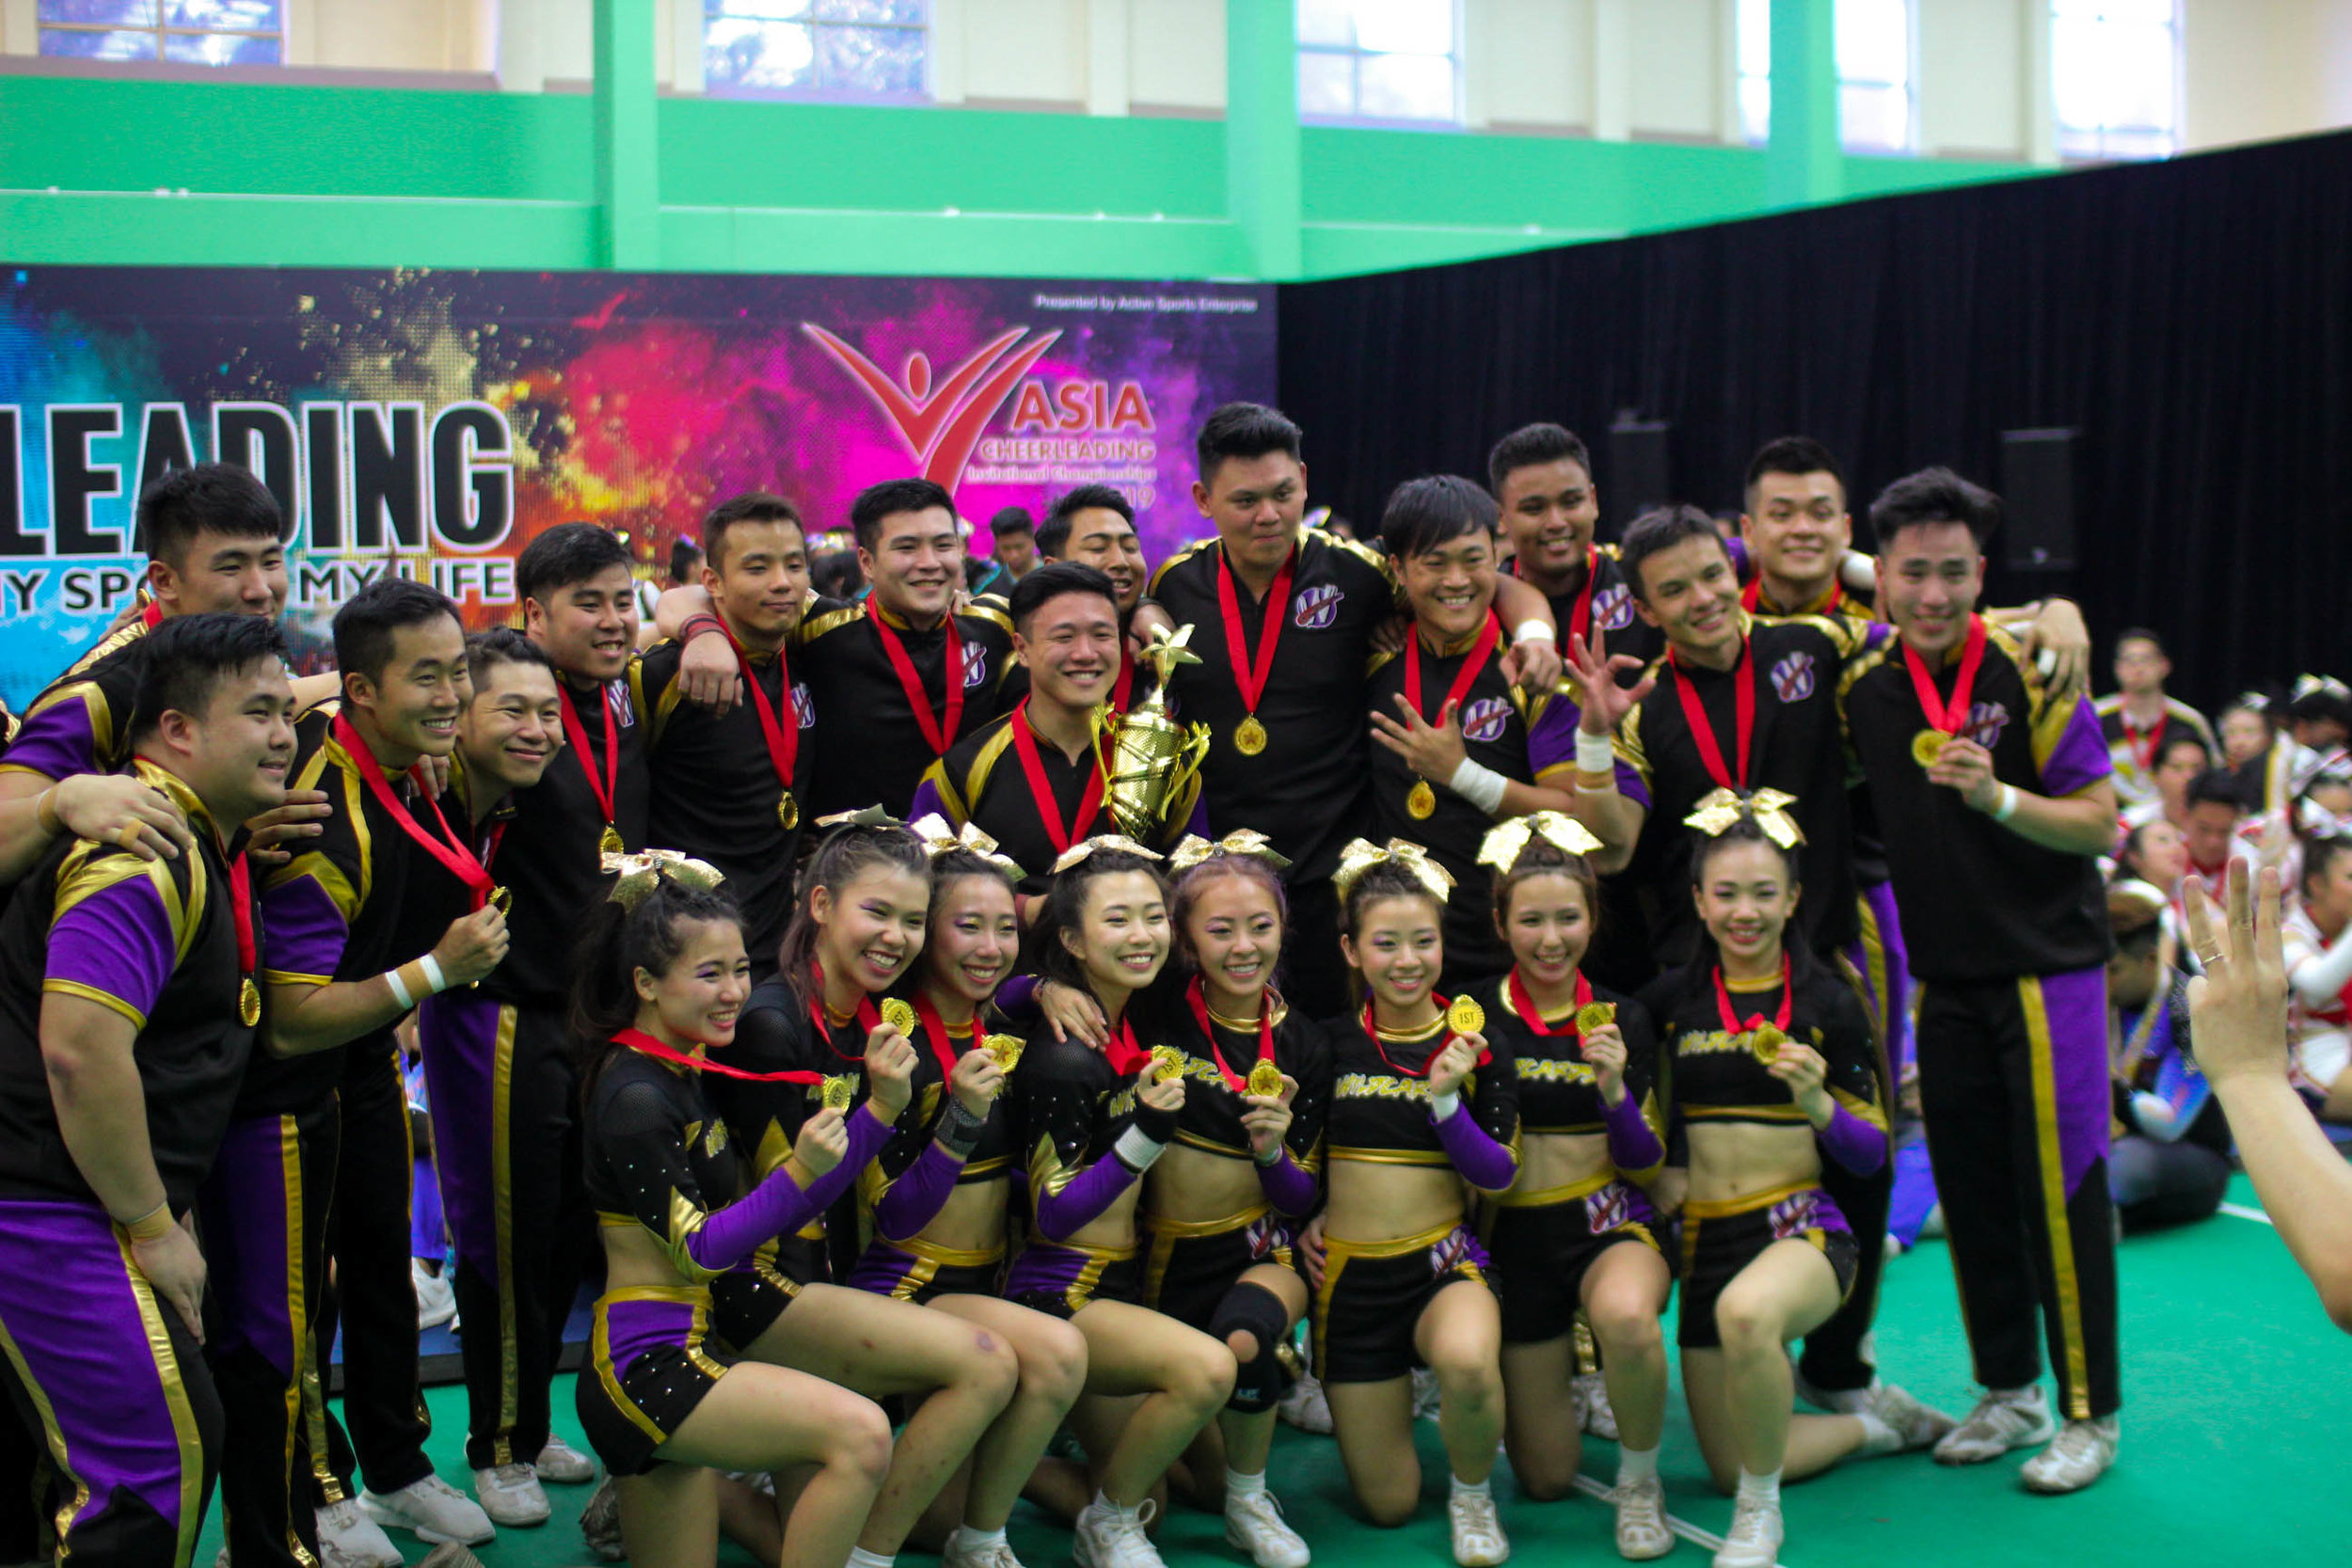 Wildcards Cheerleading Team: CASNCC and ACIC 2019 Champions.  CASNCC champions for the 9th time!